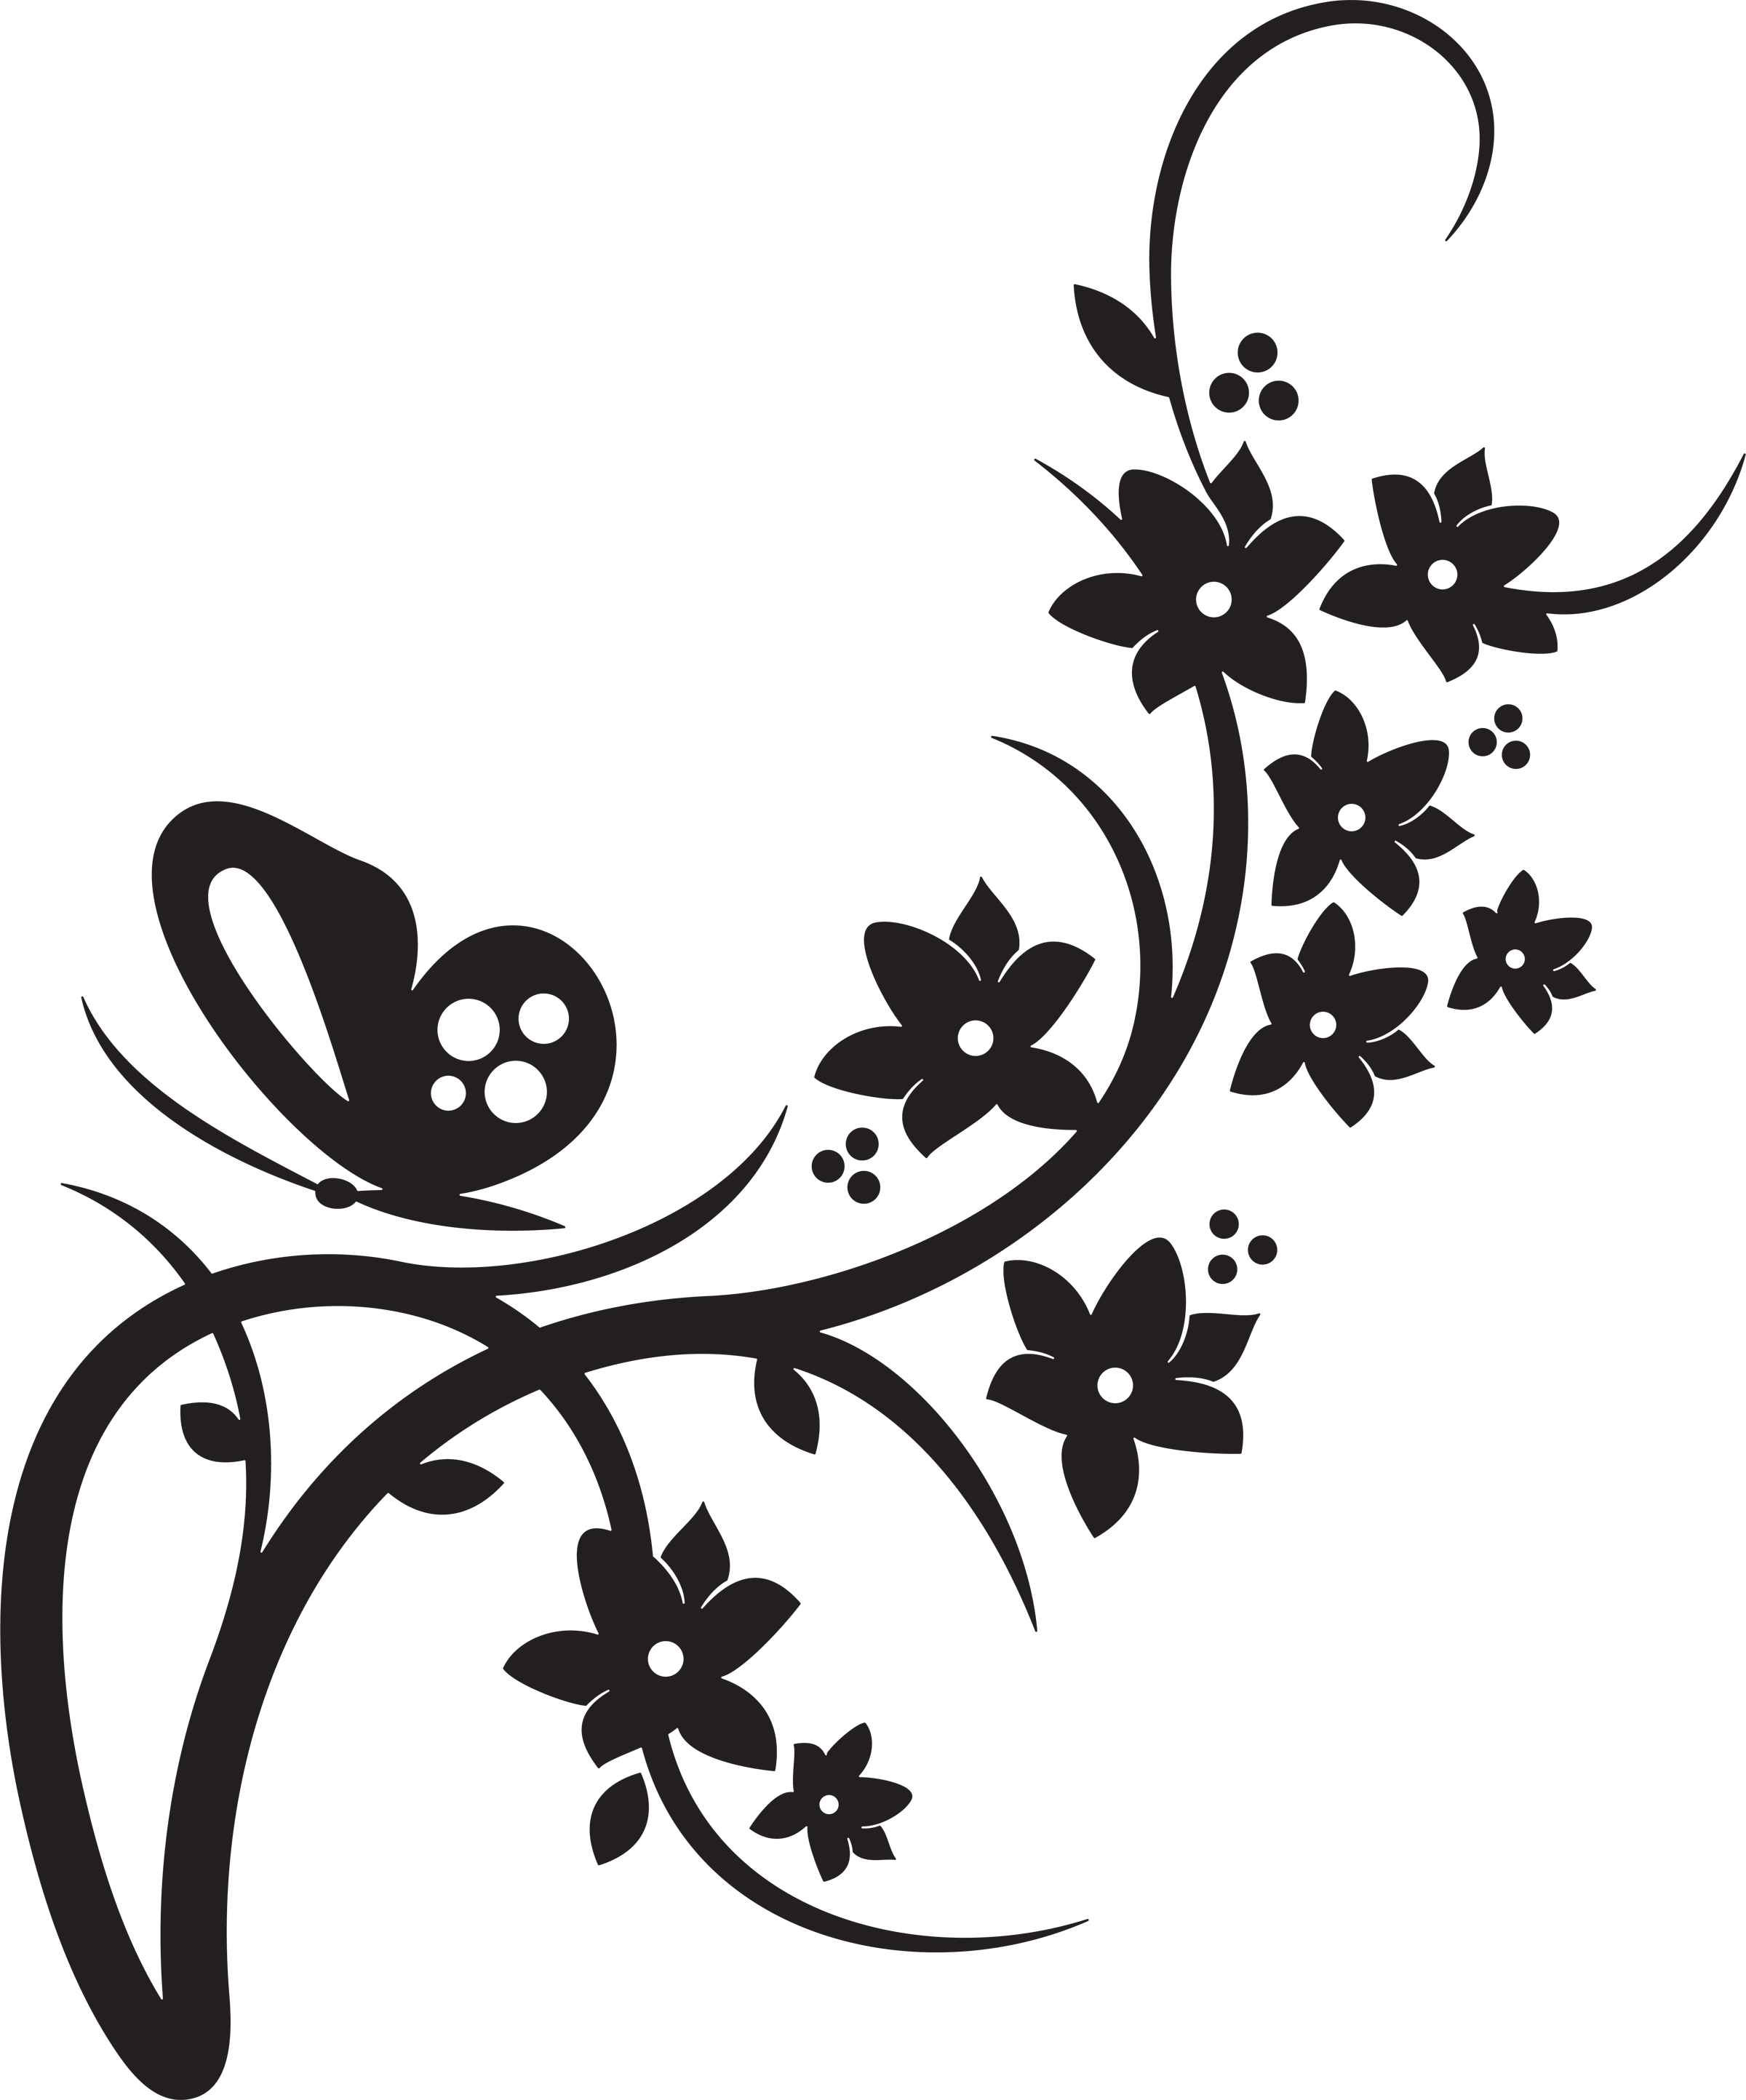 Floral clipart #1, Download drawings